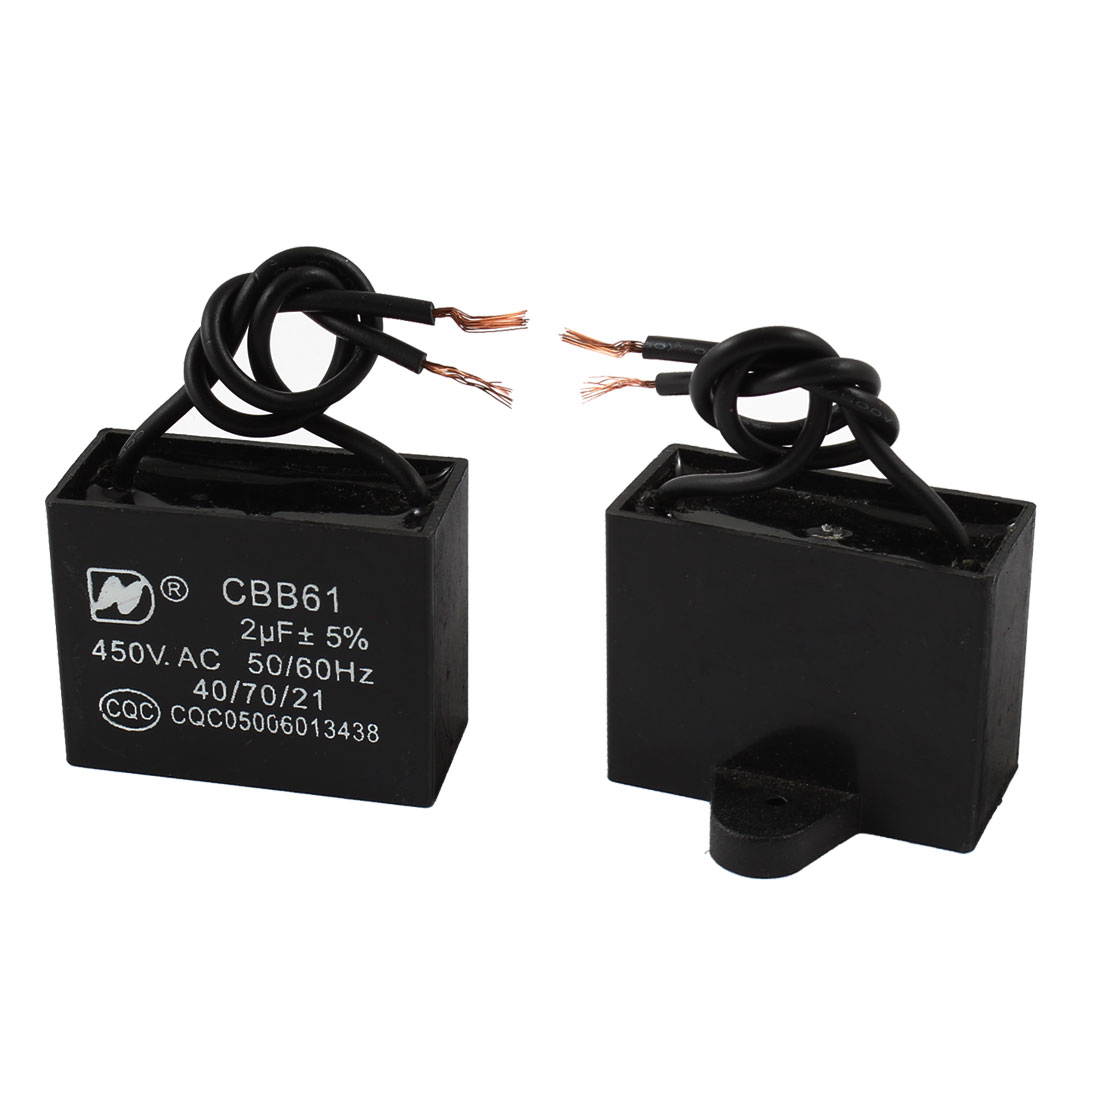 2 Pcs CBB61 AC 450V 2uF 50/60 Hz Wired Rectangle Motor Run Capacitor Black